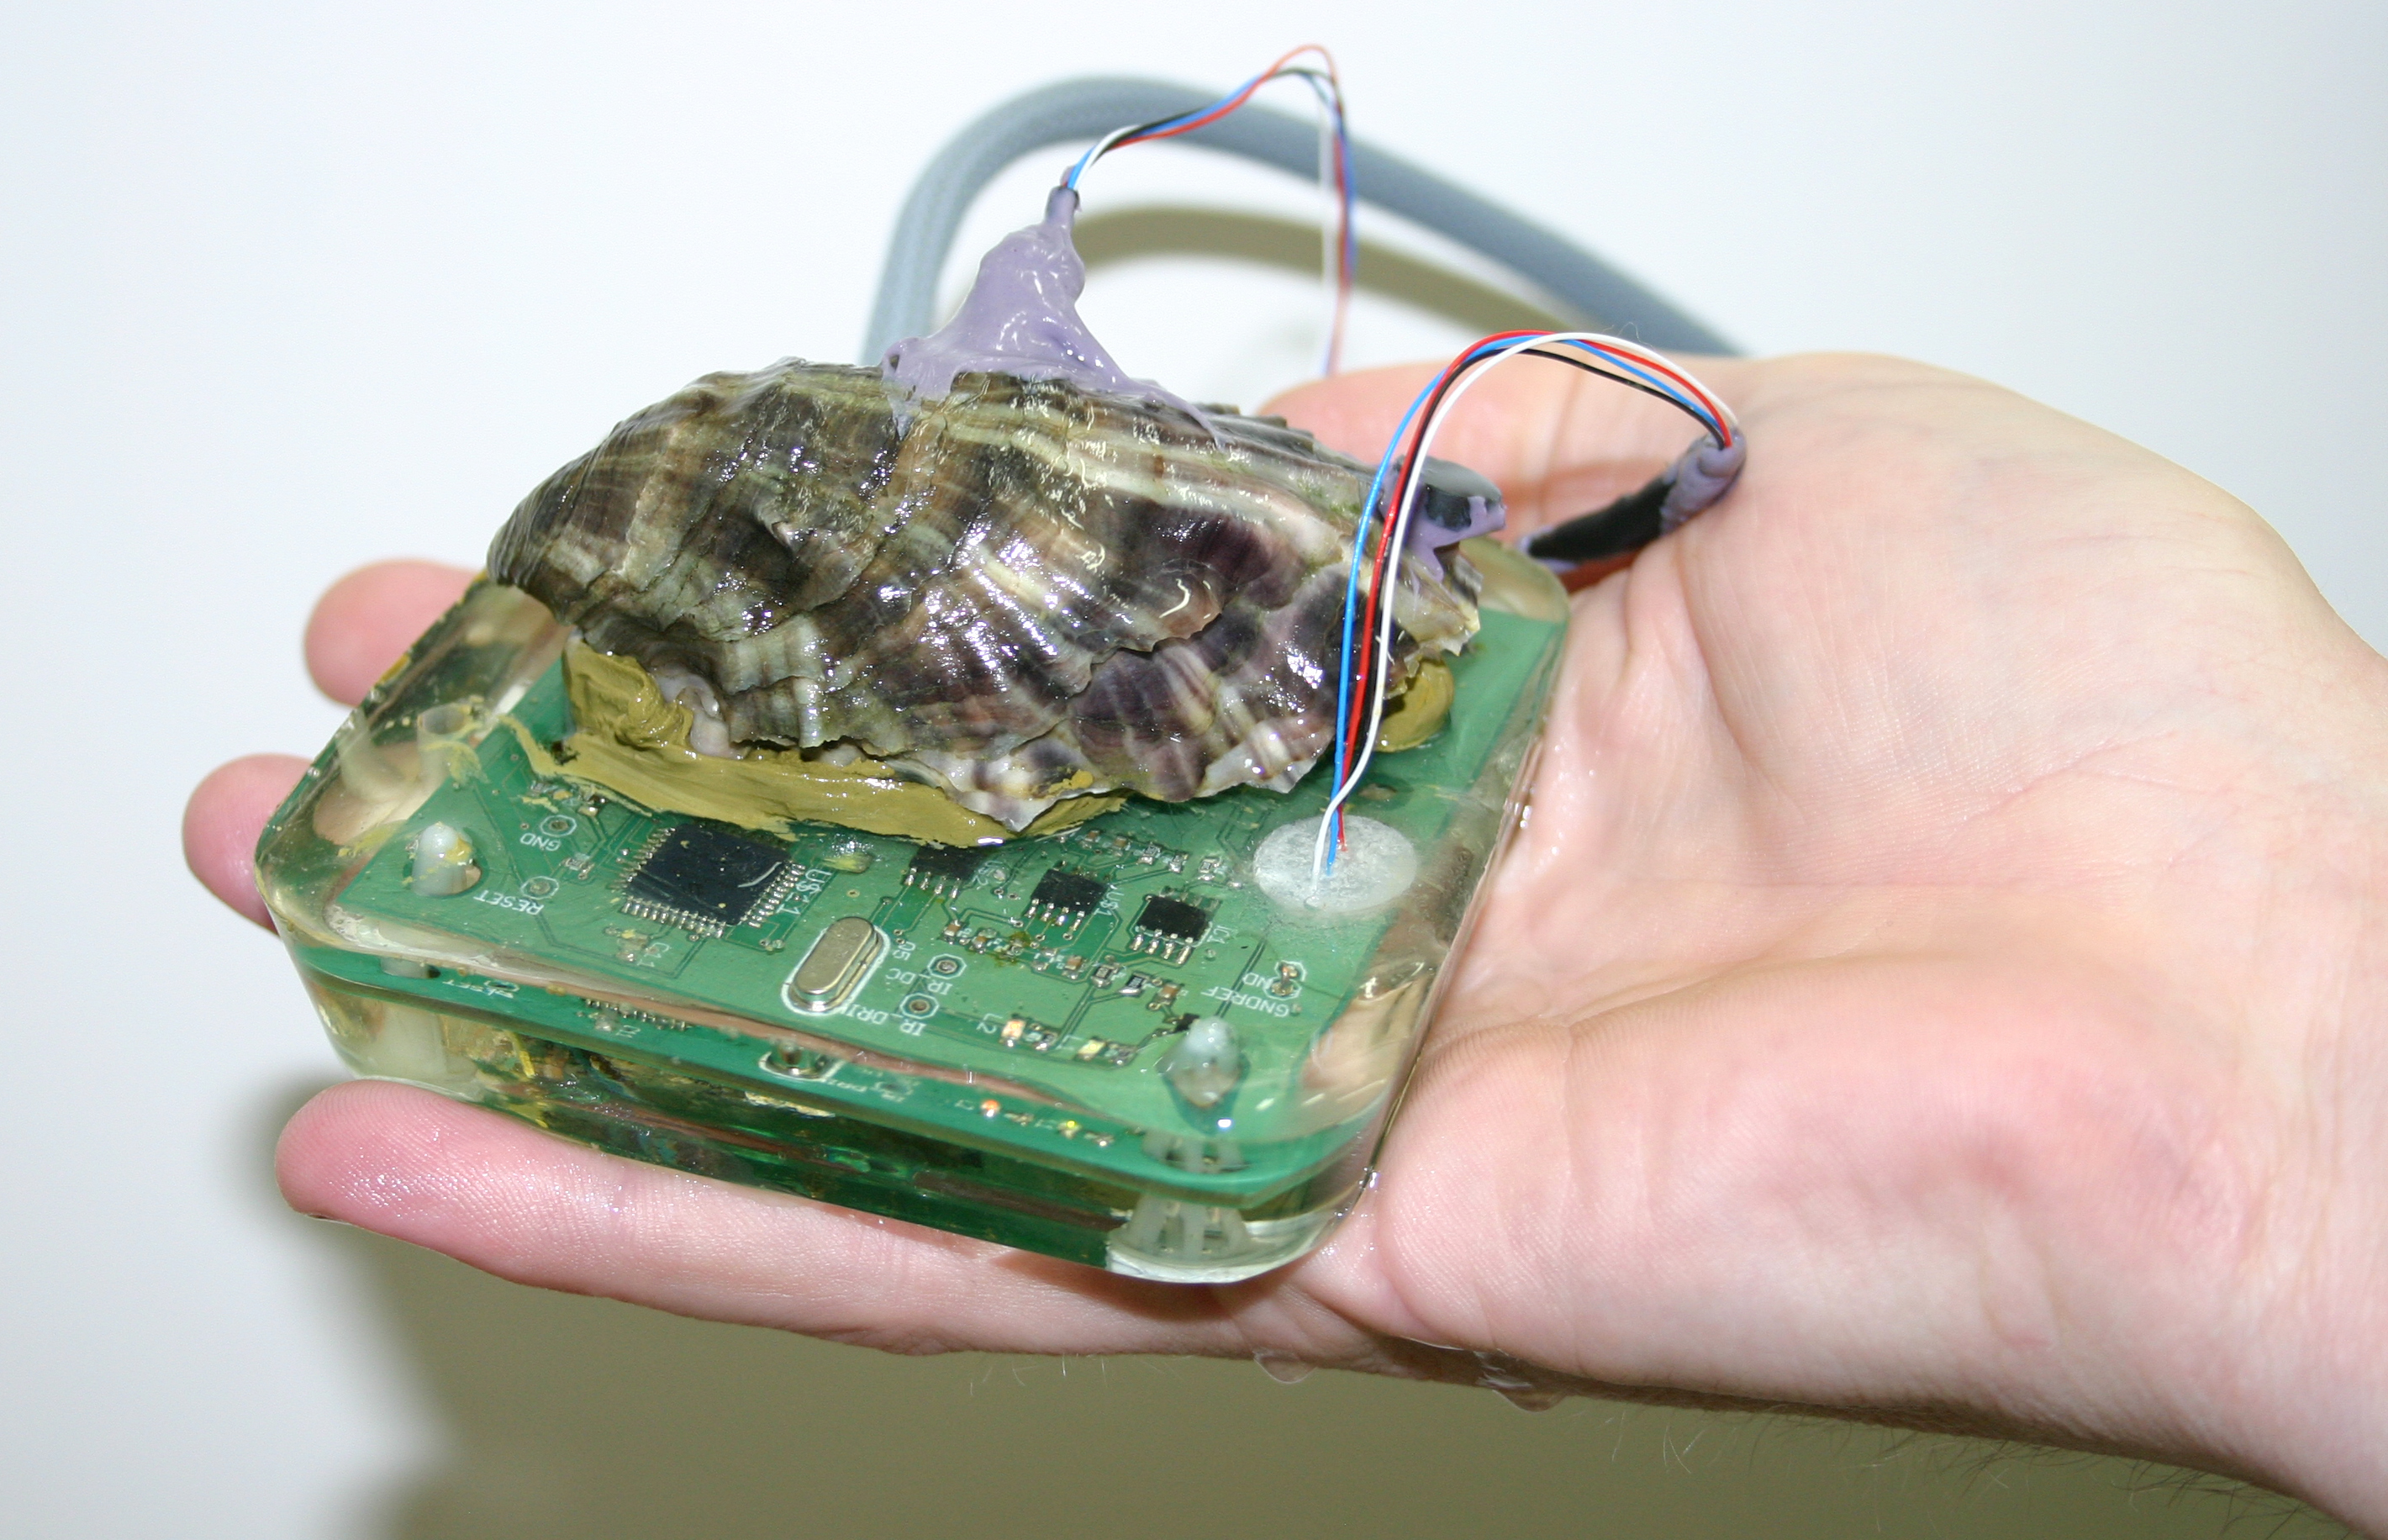 Oyster shell attached to a bio-sensor system held in the palm of a hand.